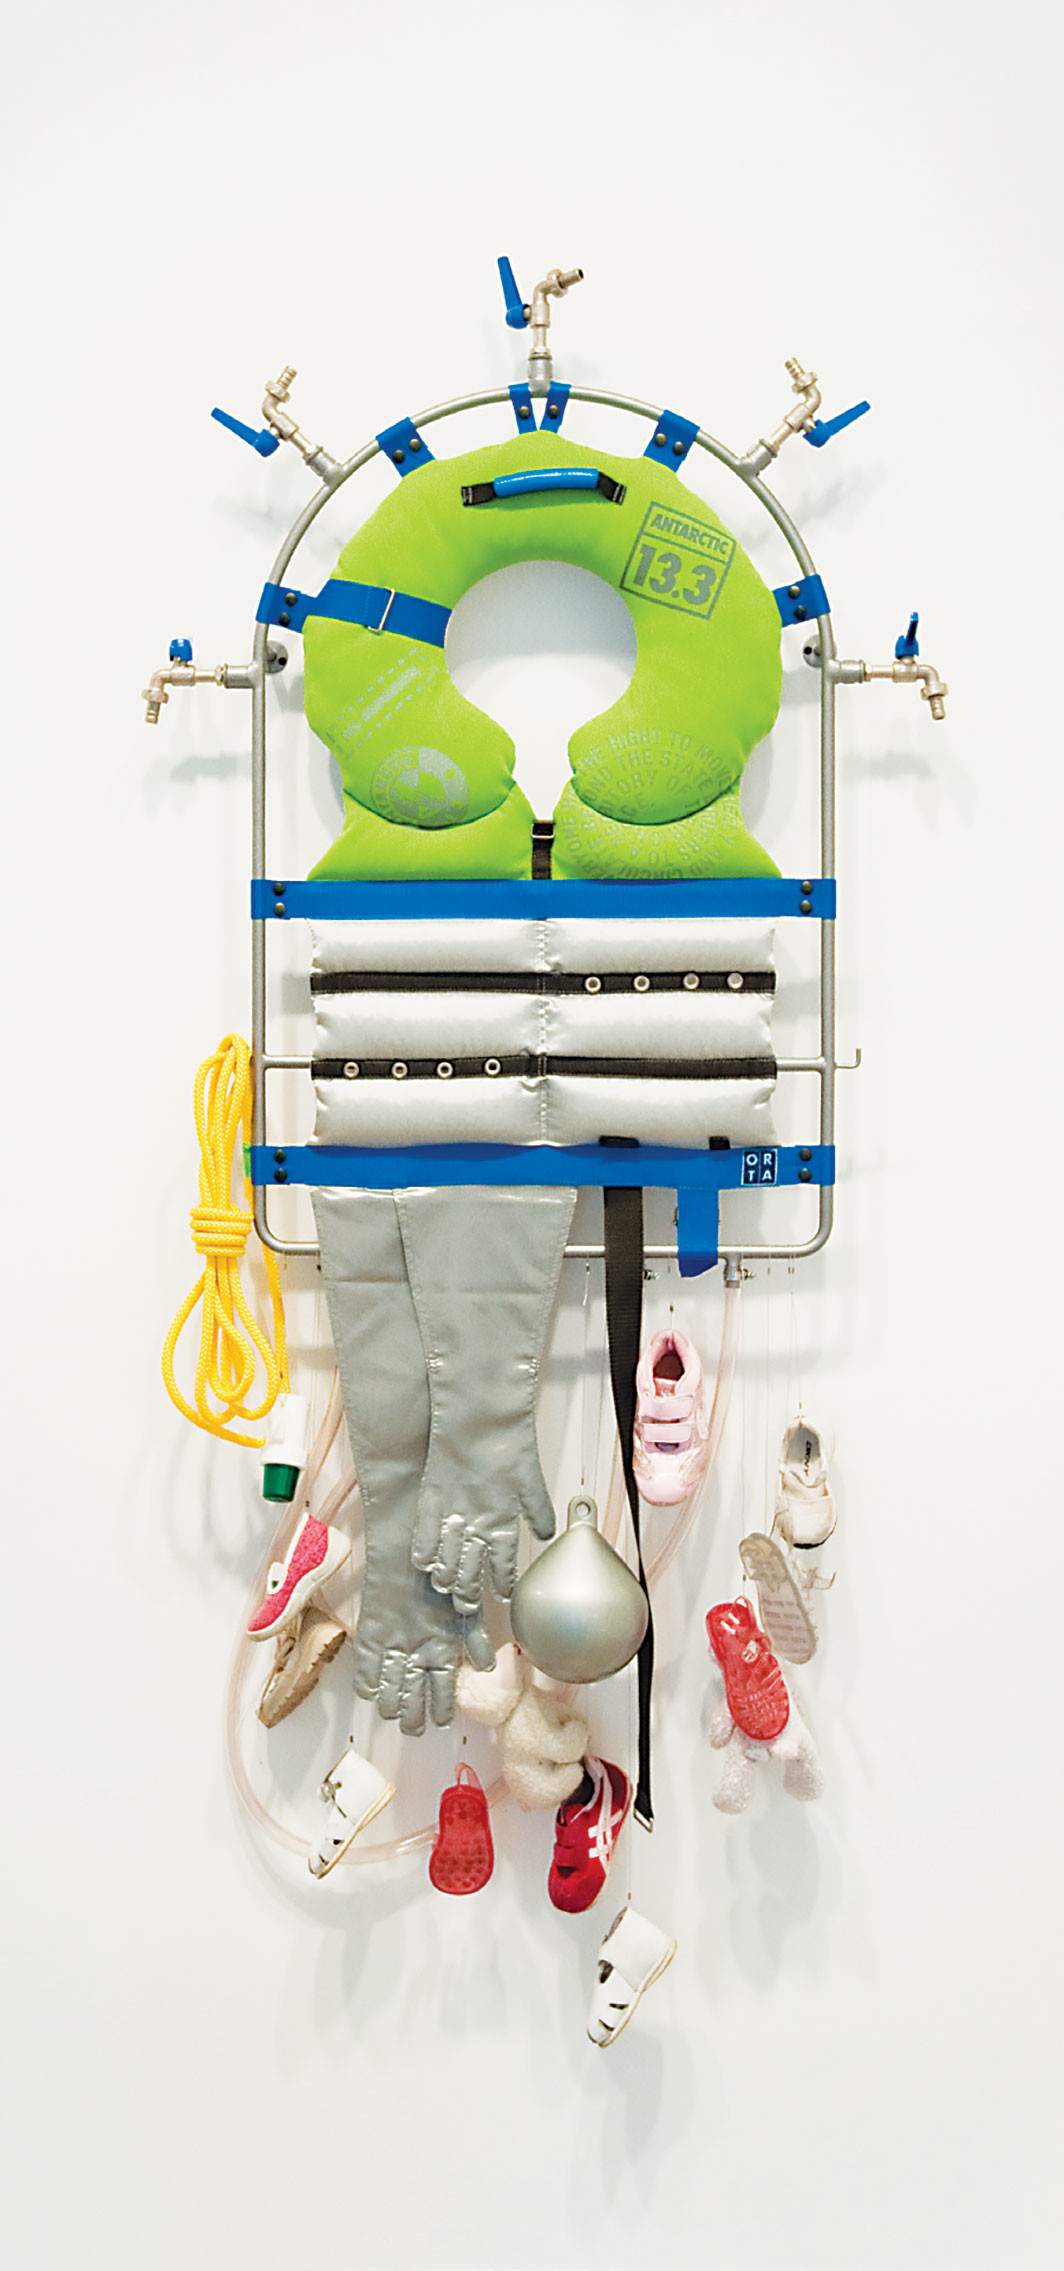 "Lucy and Jorge Orta, Life Line – Survival Kit, 2008, steel frame, piping, taps, textiles, silk screen on fabric, webbing, shoes, float, warning light, rope, 59 × 31 1⁄2 × 5 7⁄8"". Courtesy the artist and Jane Lombard Gallery"